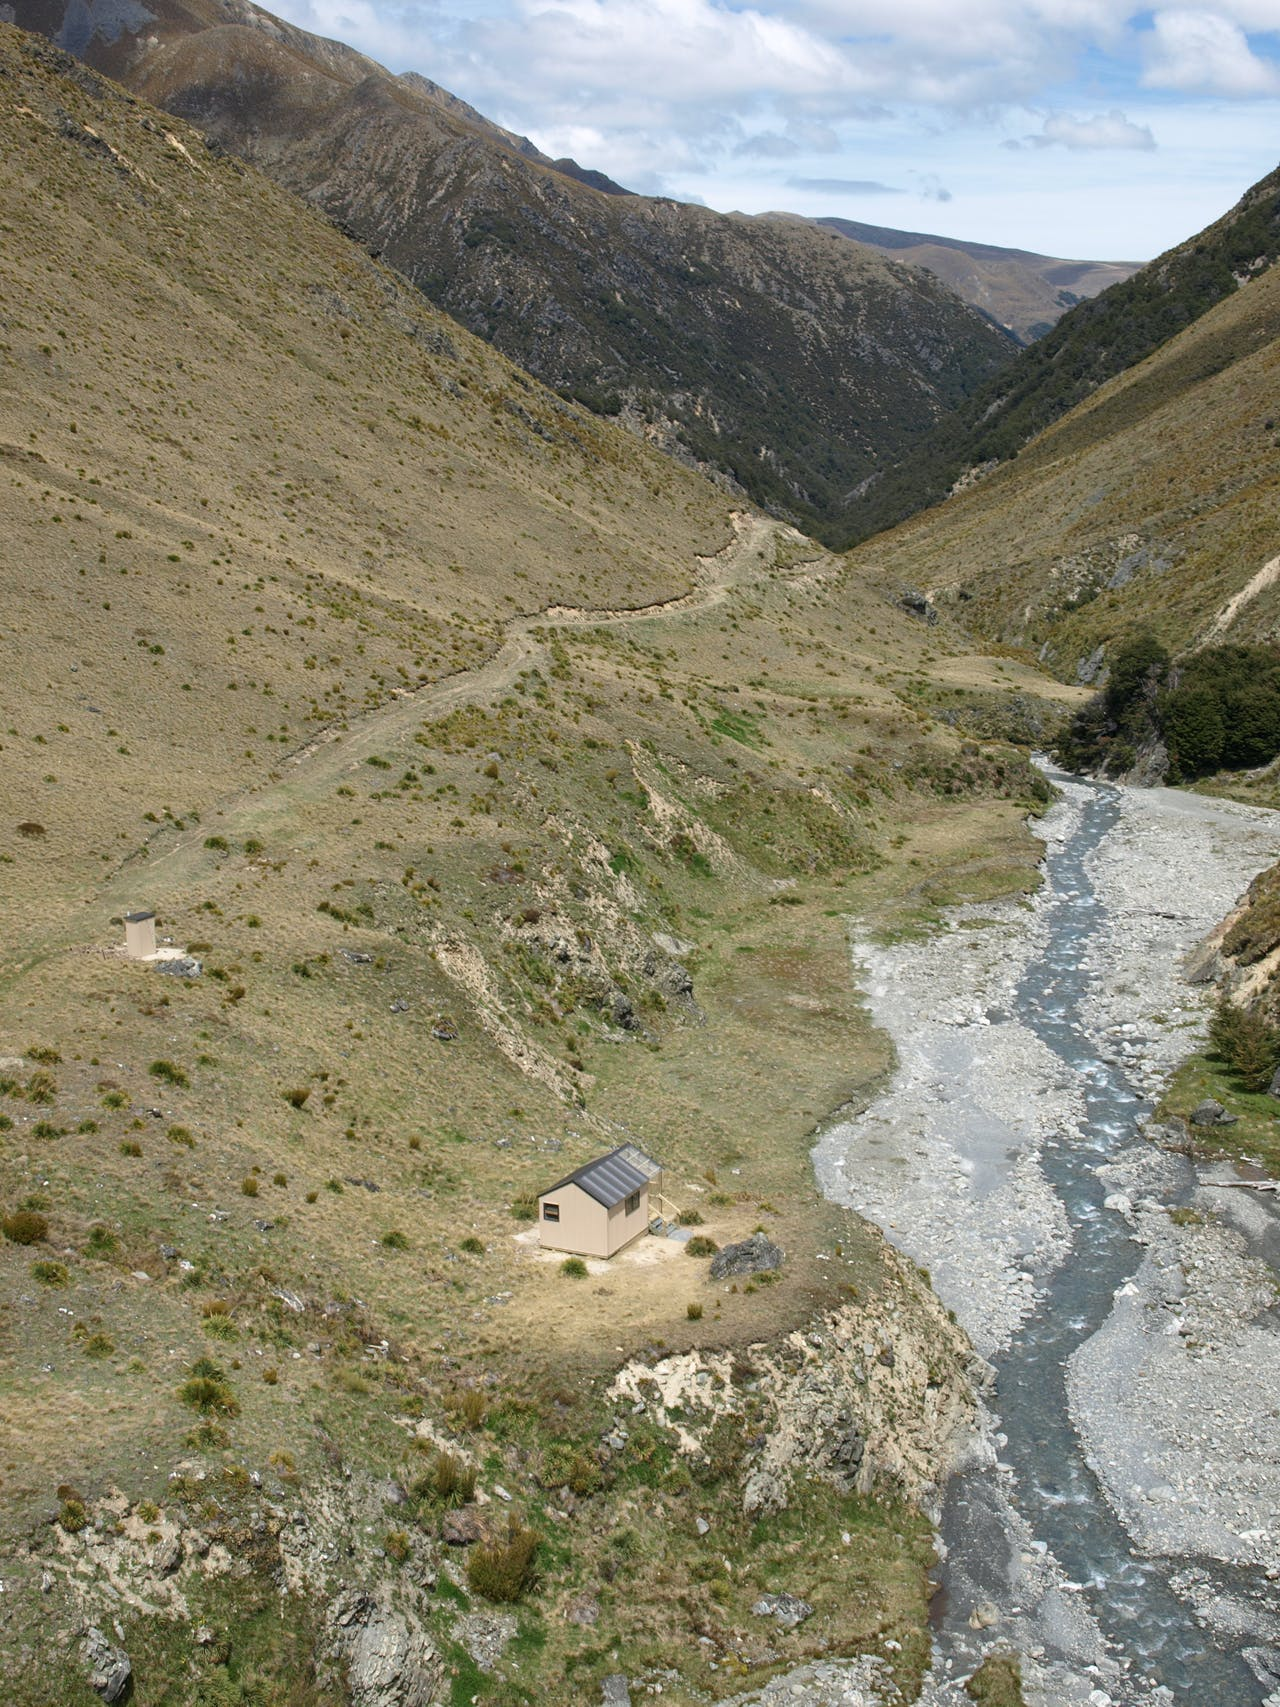 Top Timaru Hut is now accessed without having to cross the Timaru River